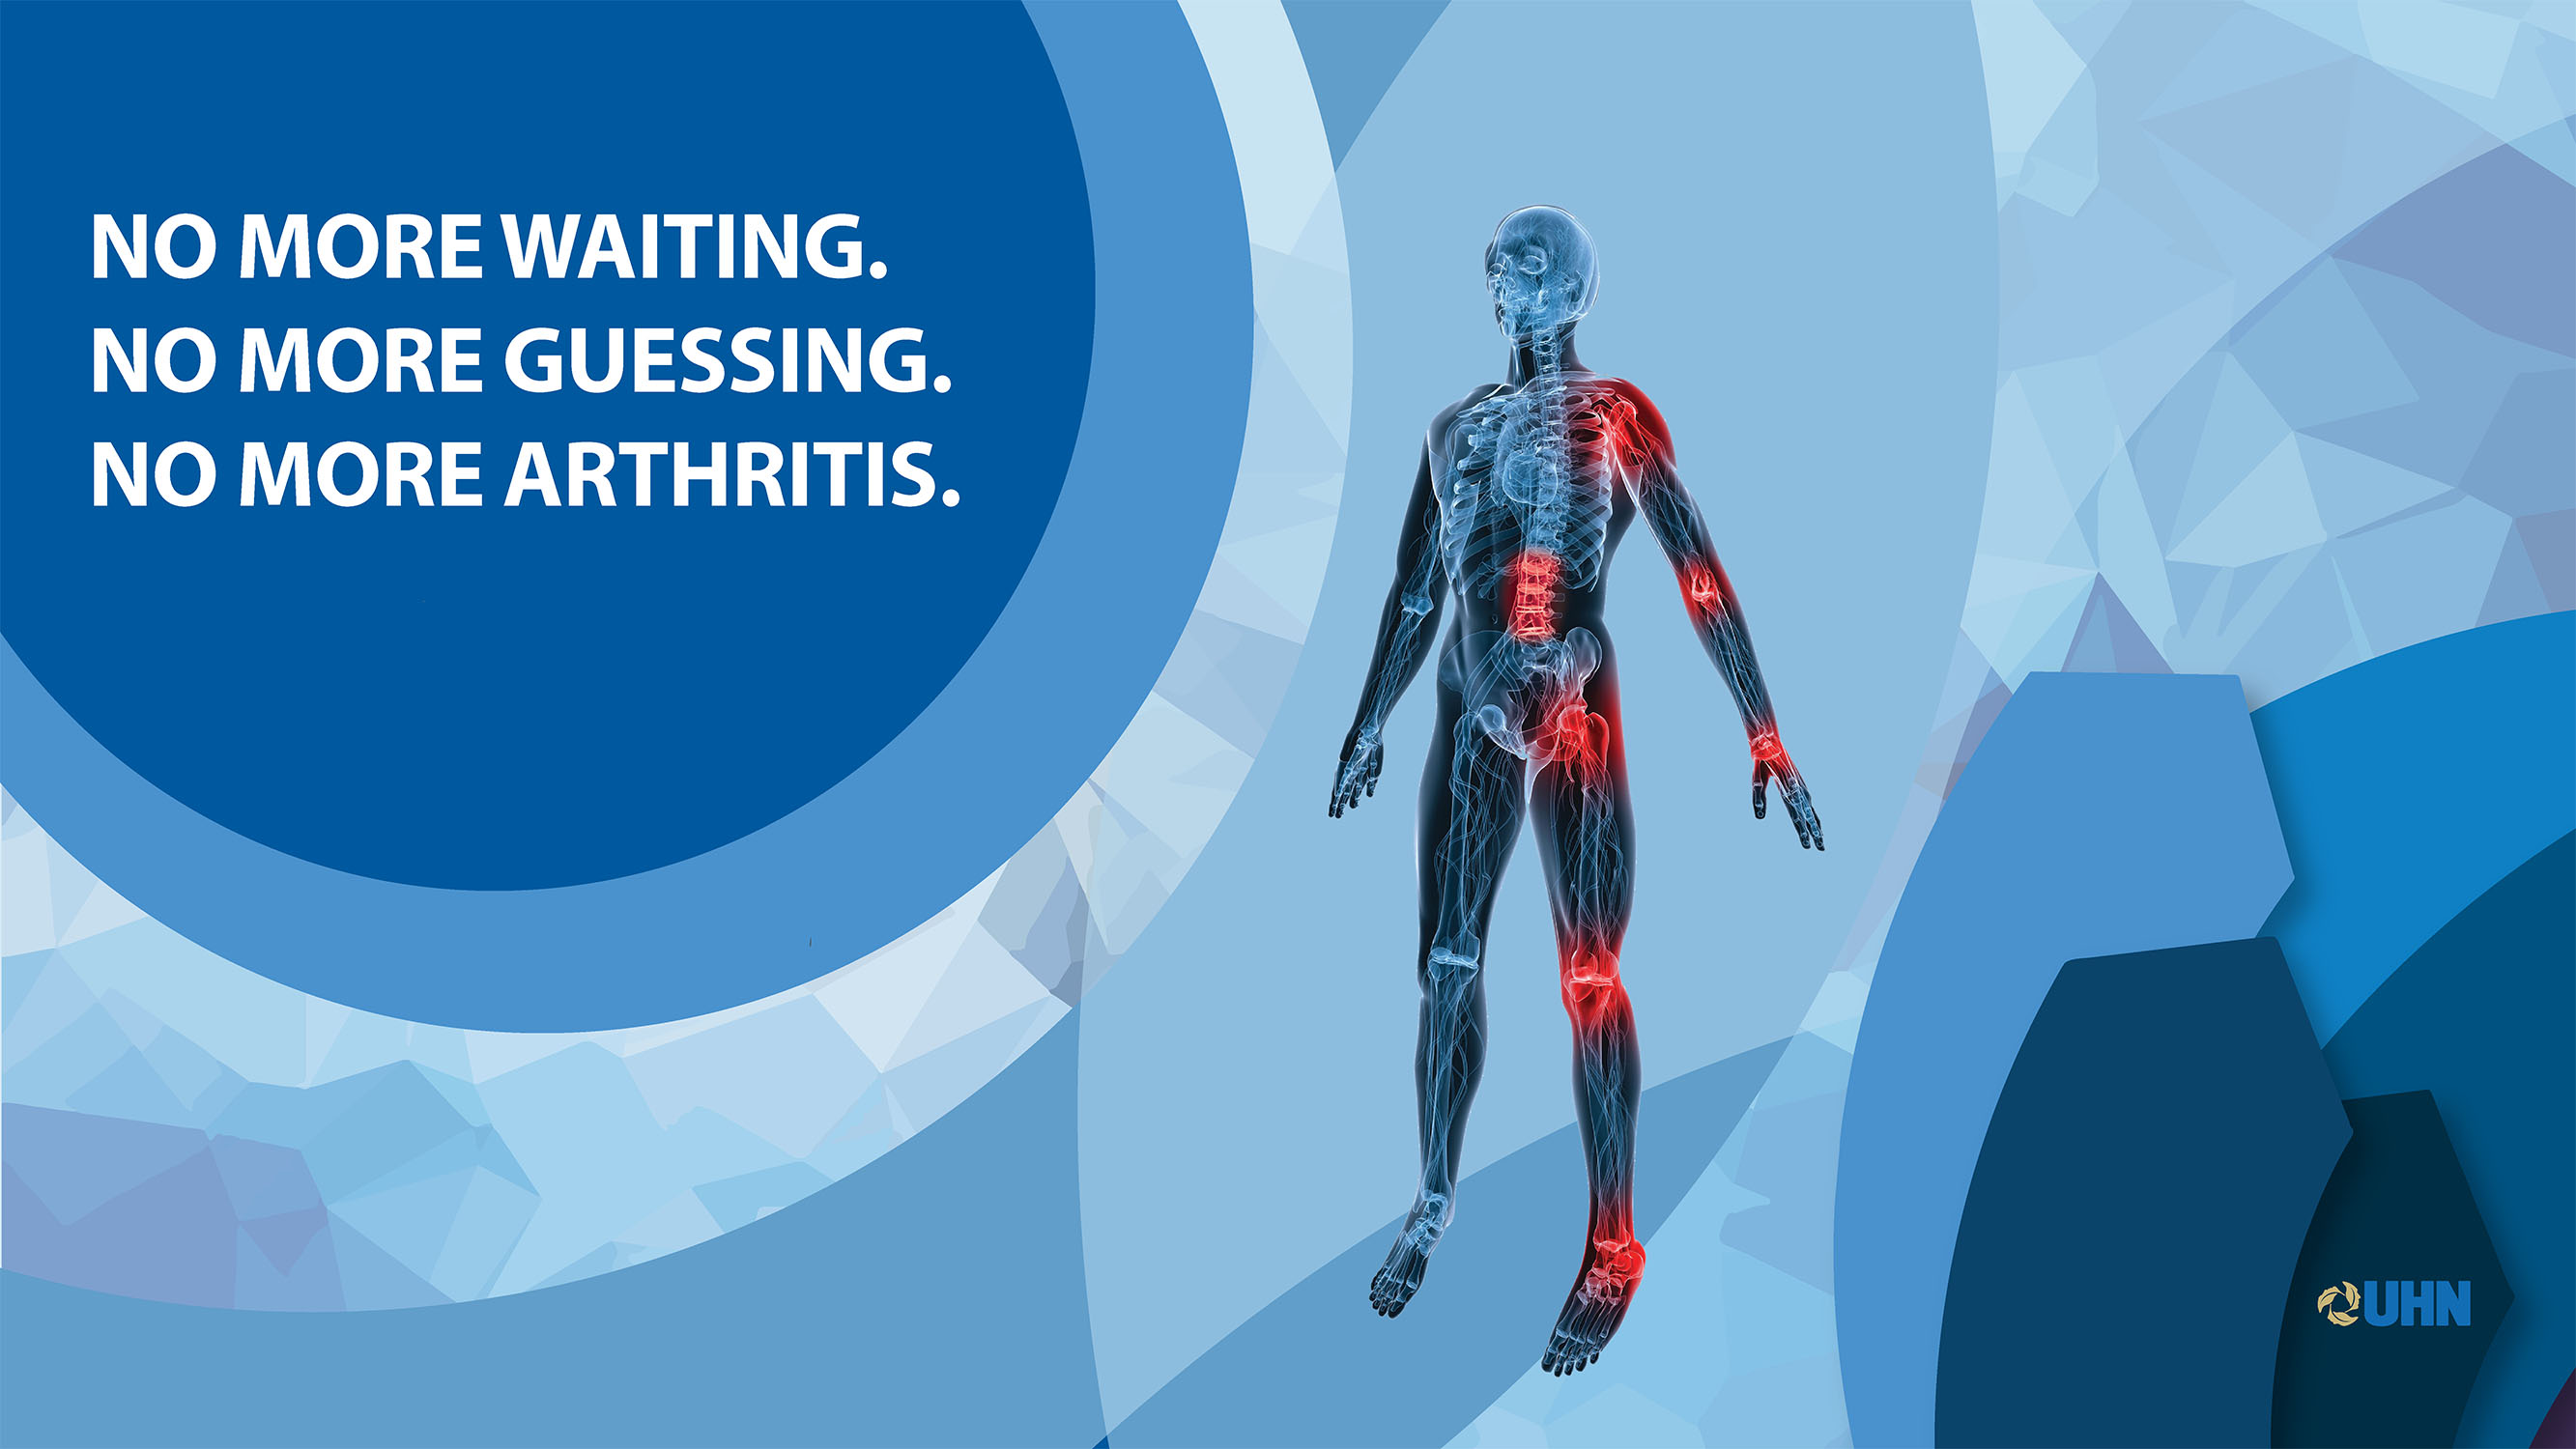 No more arthritis